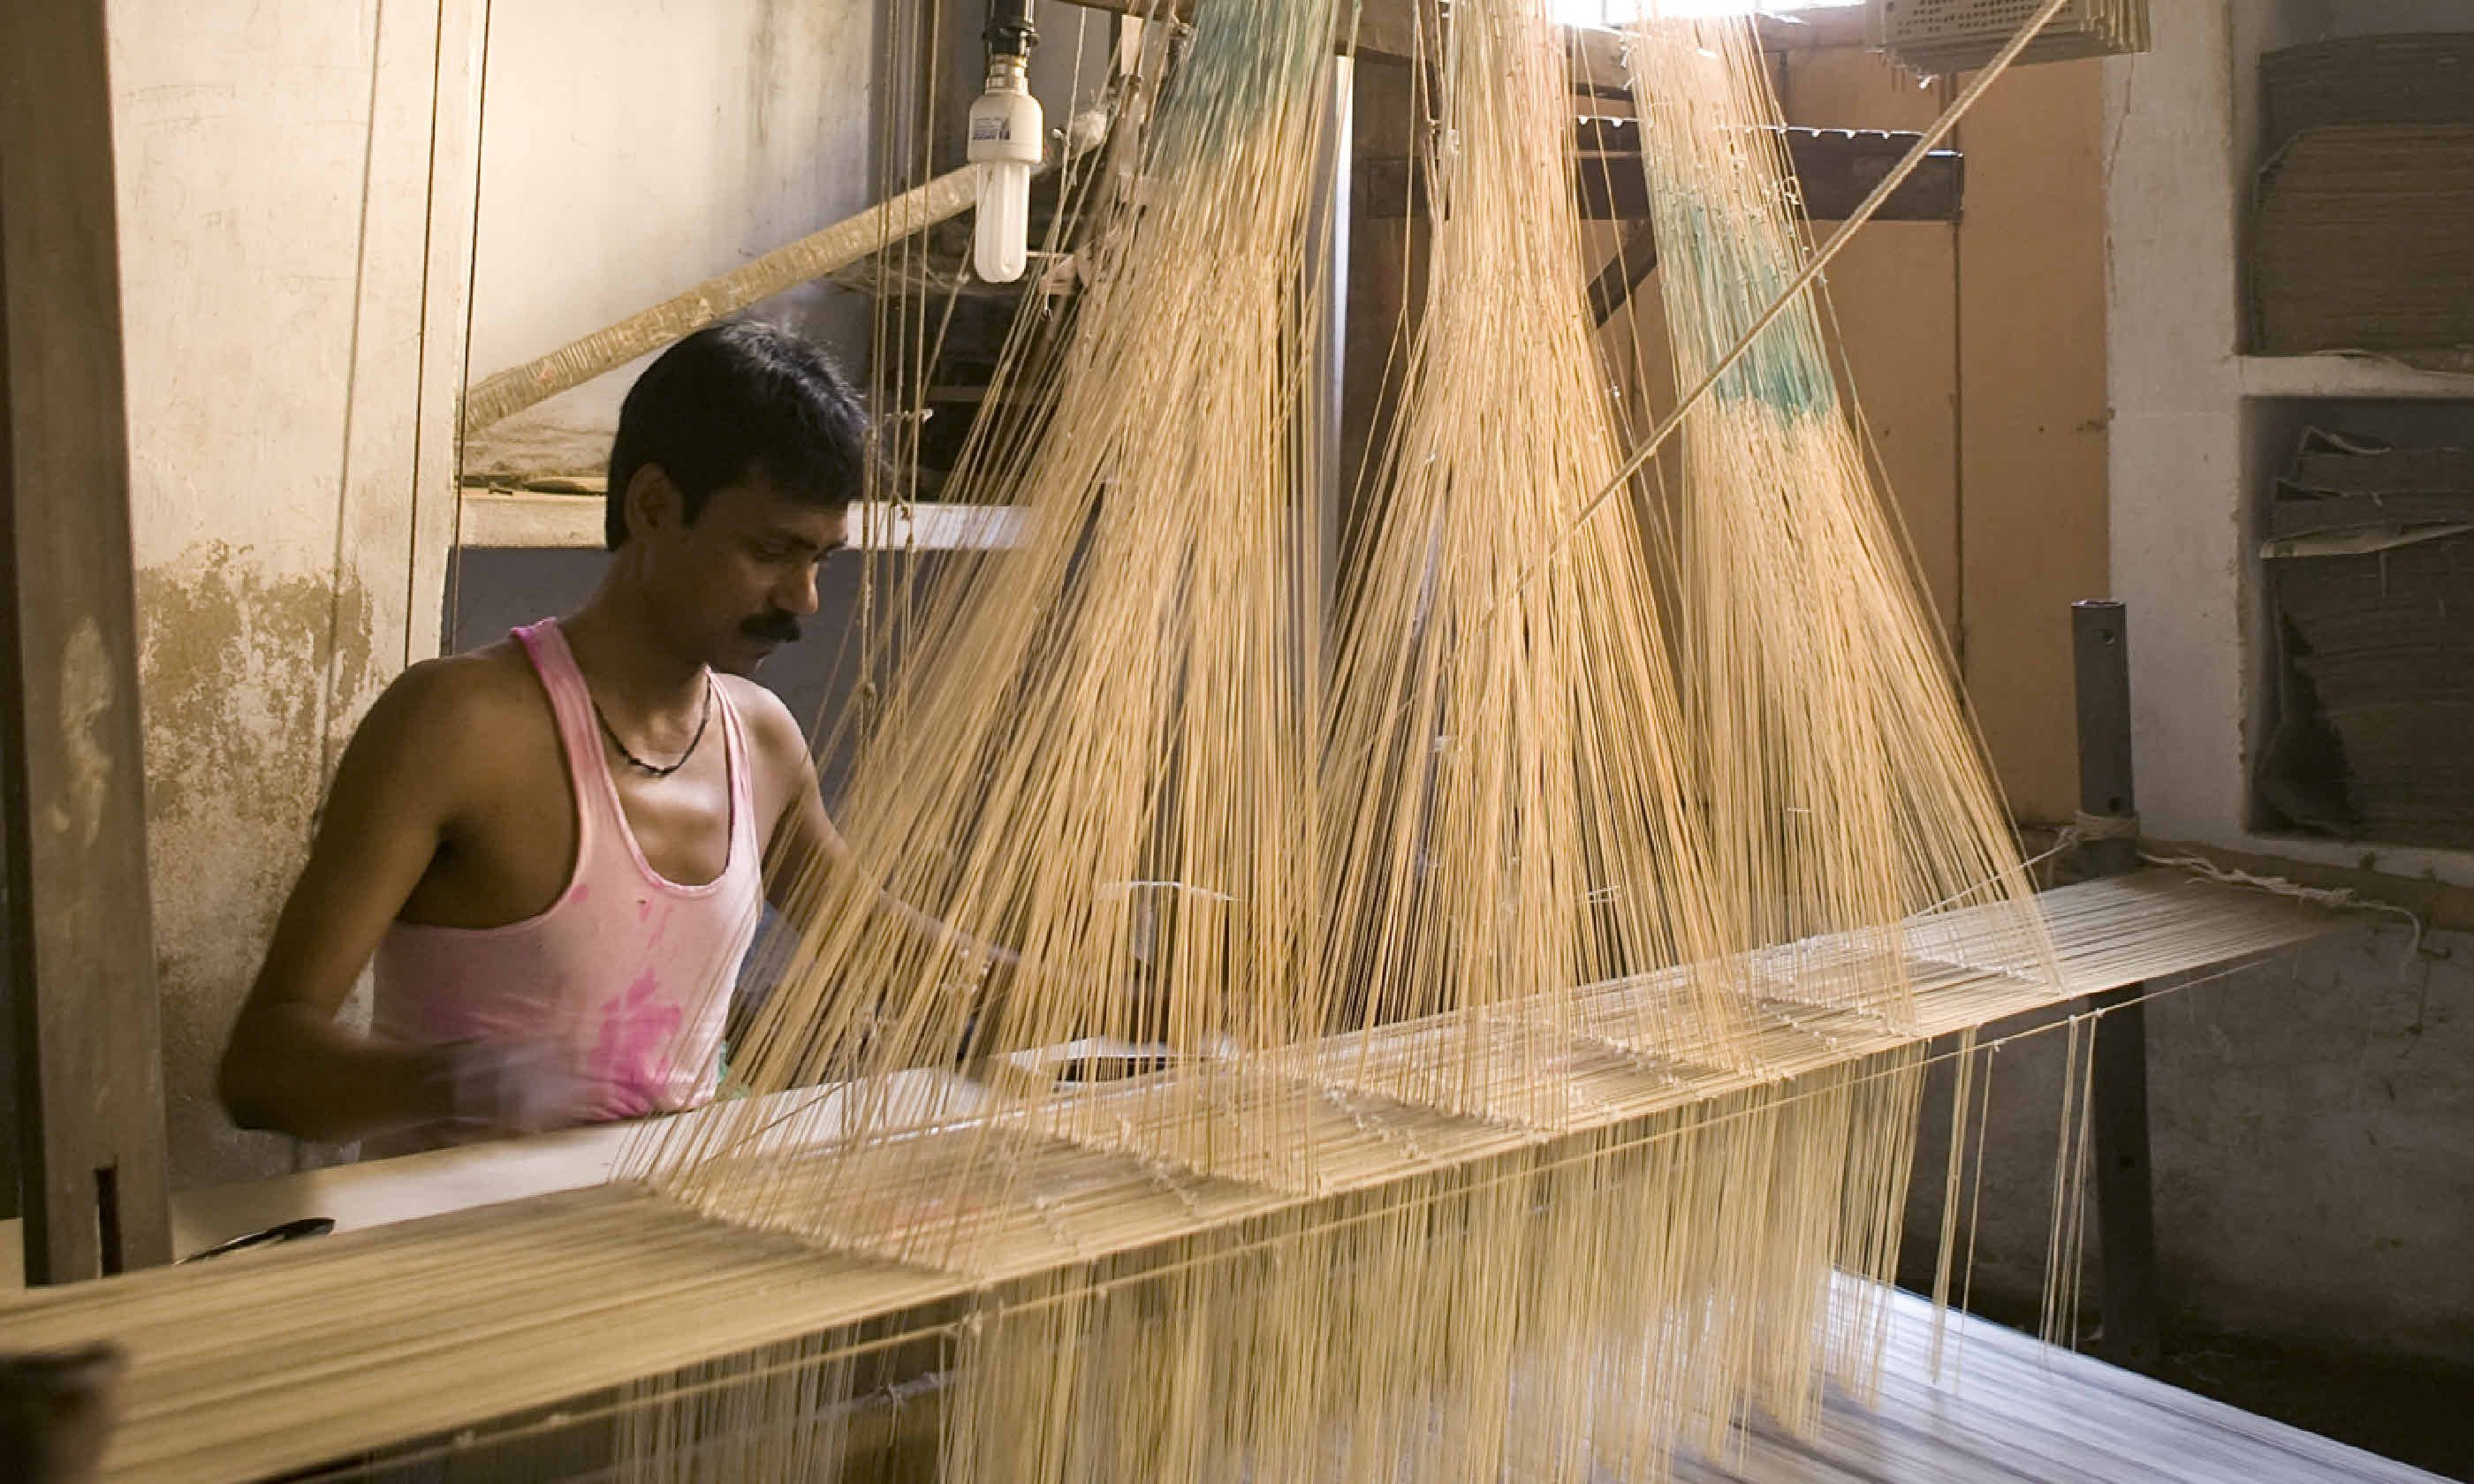 Making sari cloth (Shutterstock)